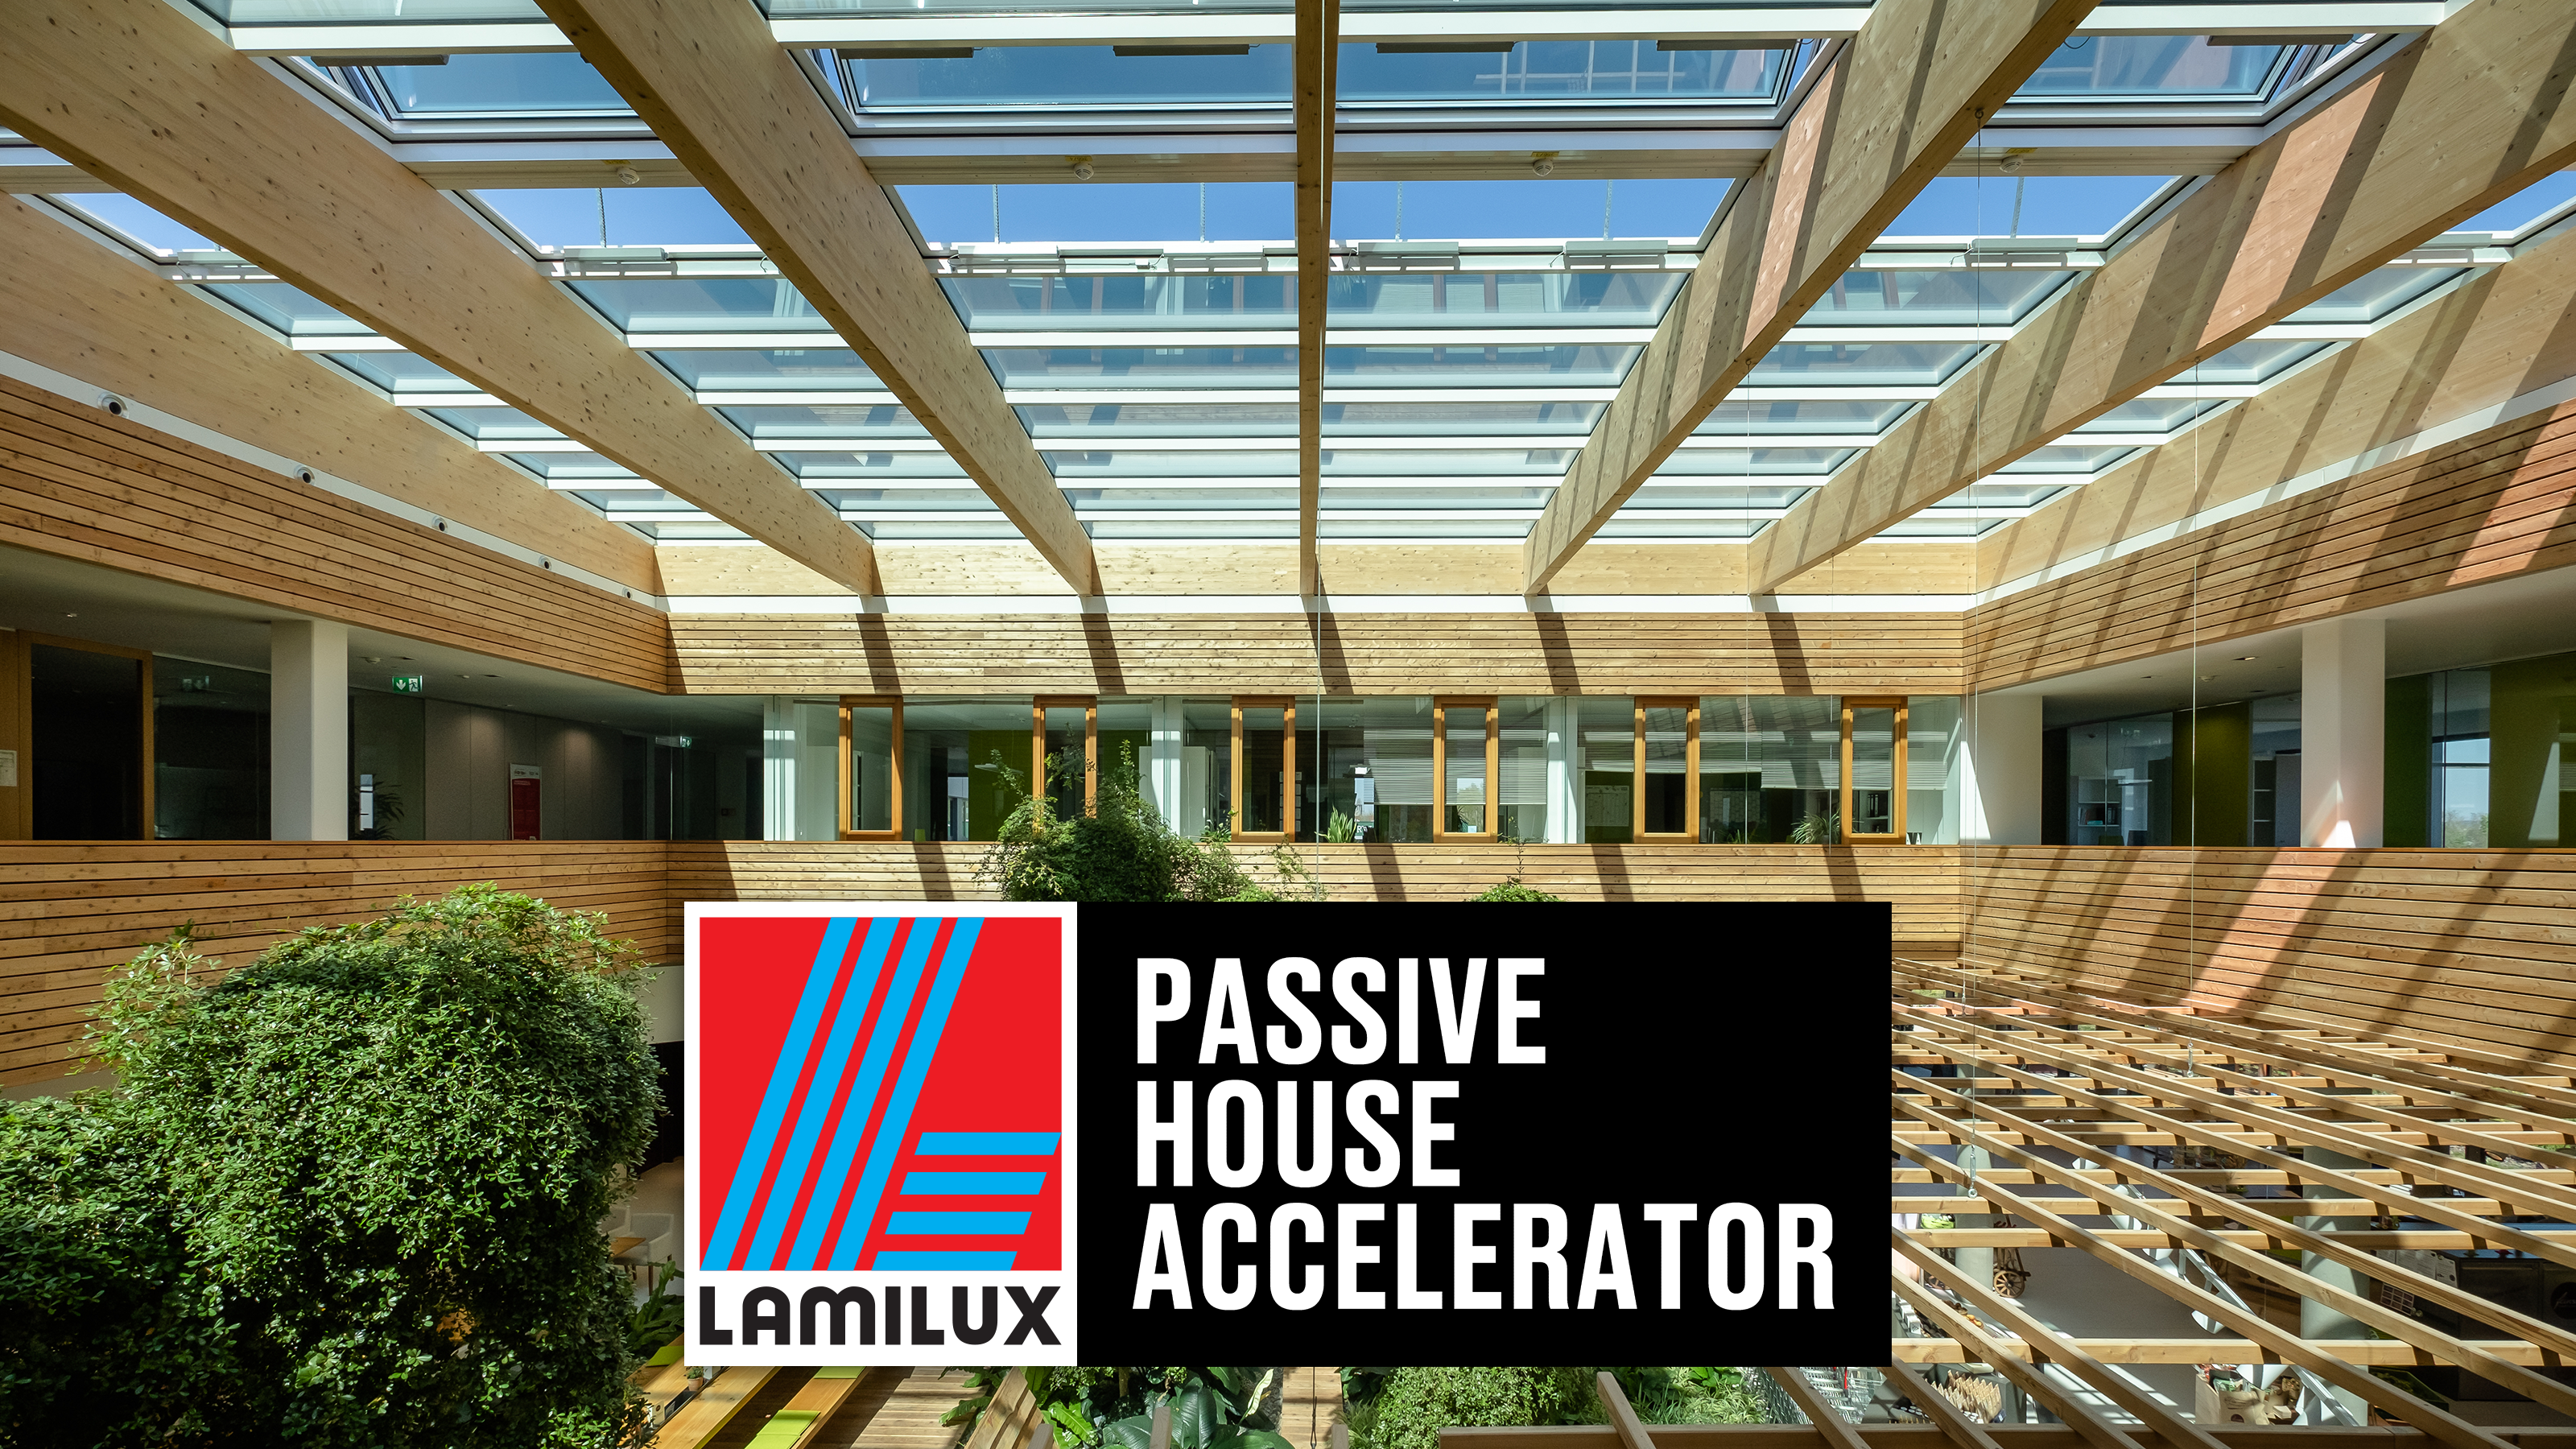 LAMILUX Becomes a Patron Sponsor of Passive House Accelerator